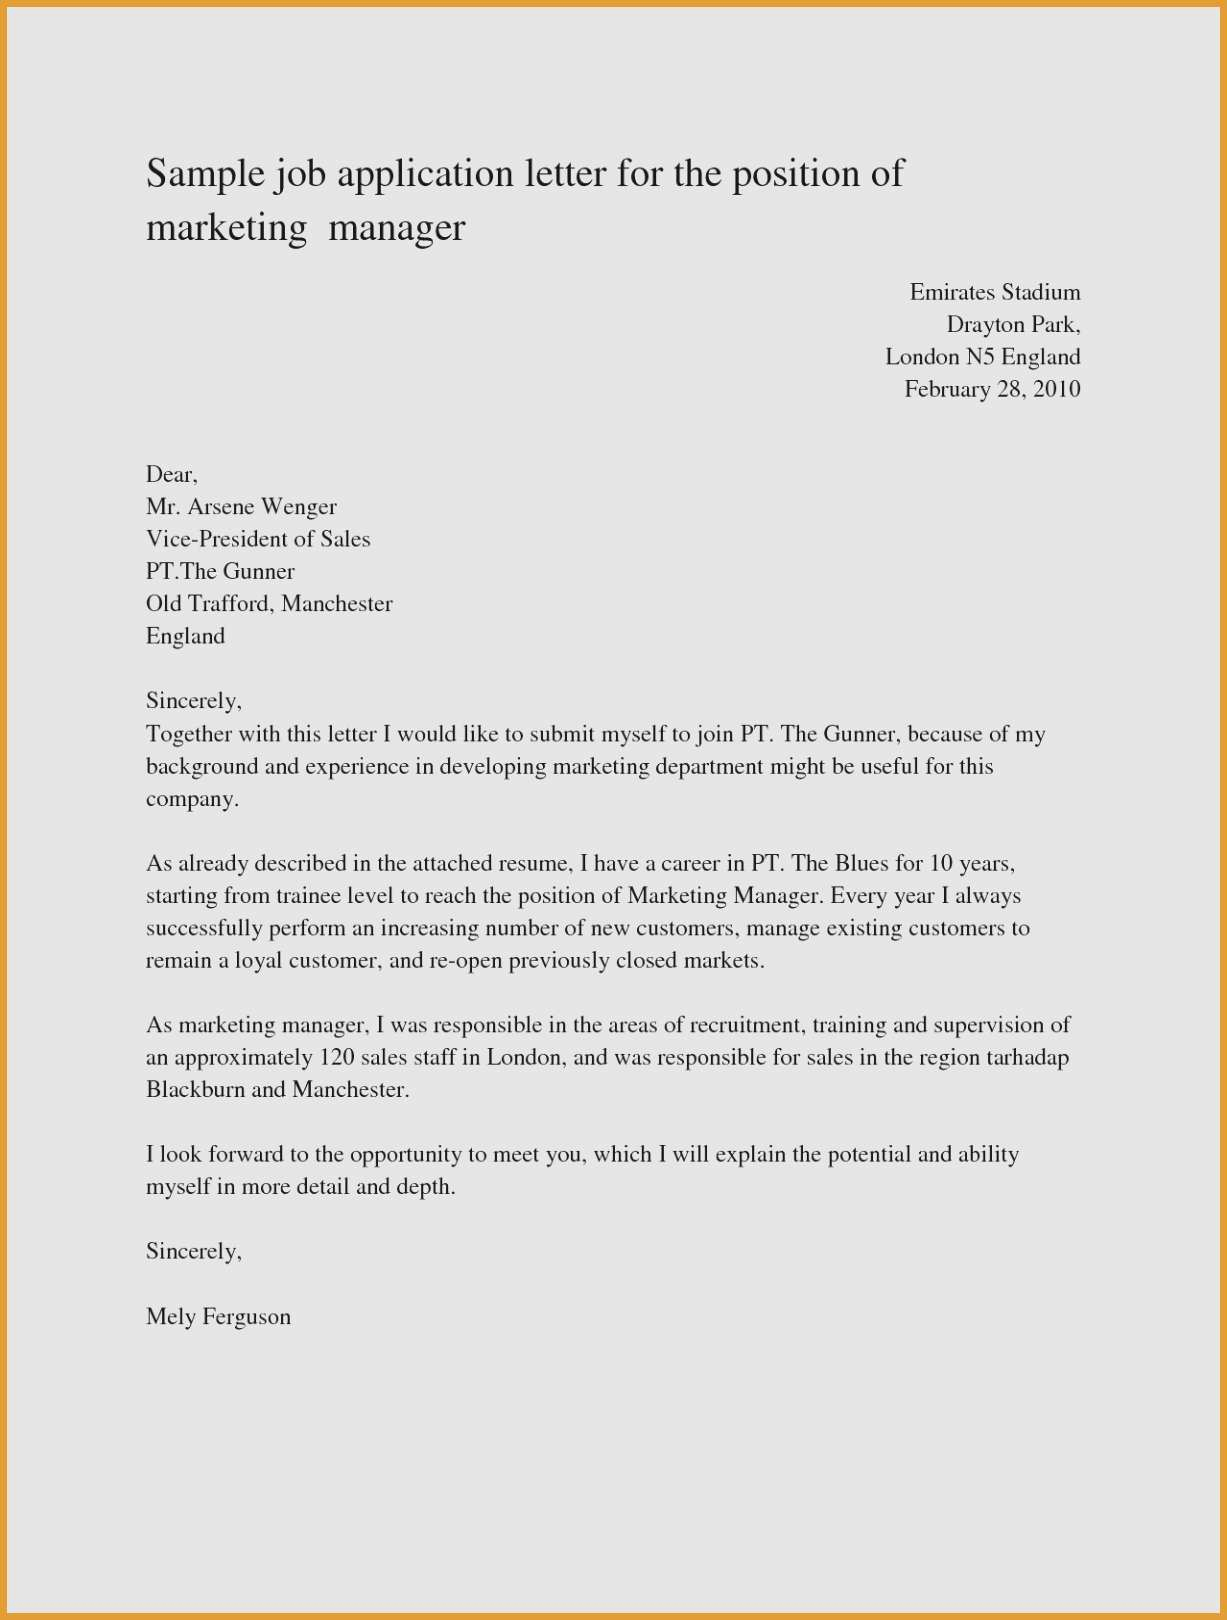 Marketing Skills Resume - Sales and Marketing Resume Samples Example Resume Skills Elegant